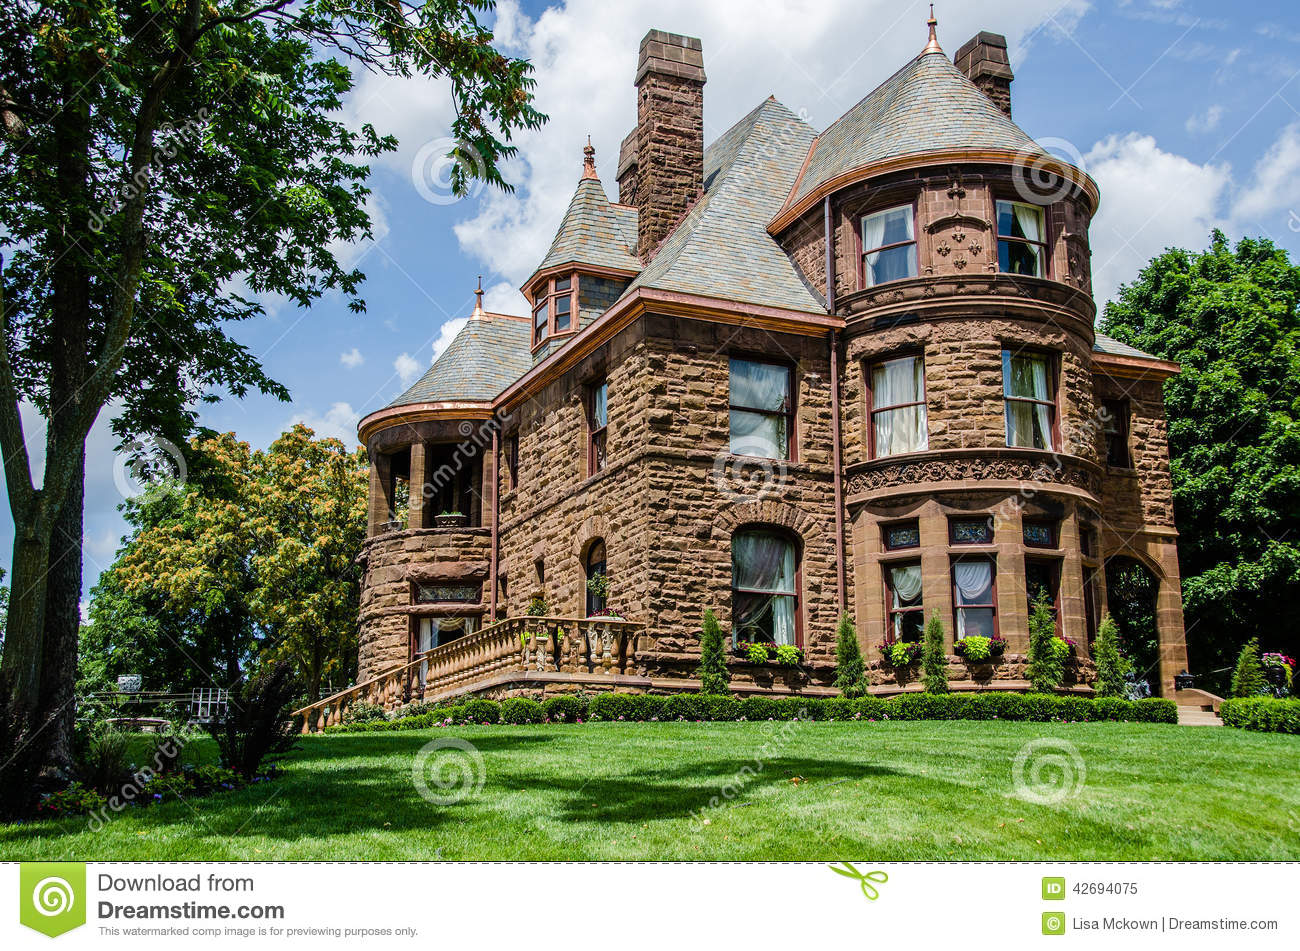 Queen anne style home stock photo image 42694075 Queen anne house